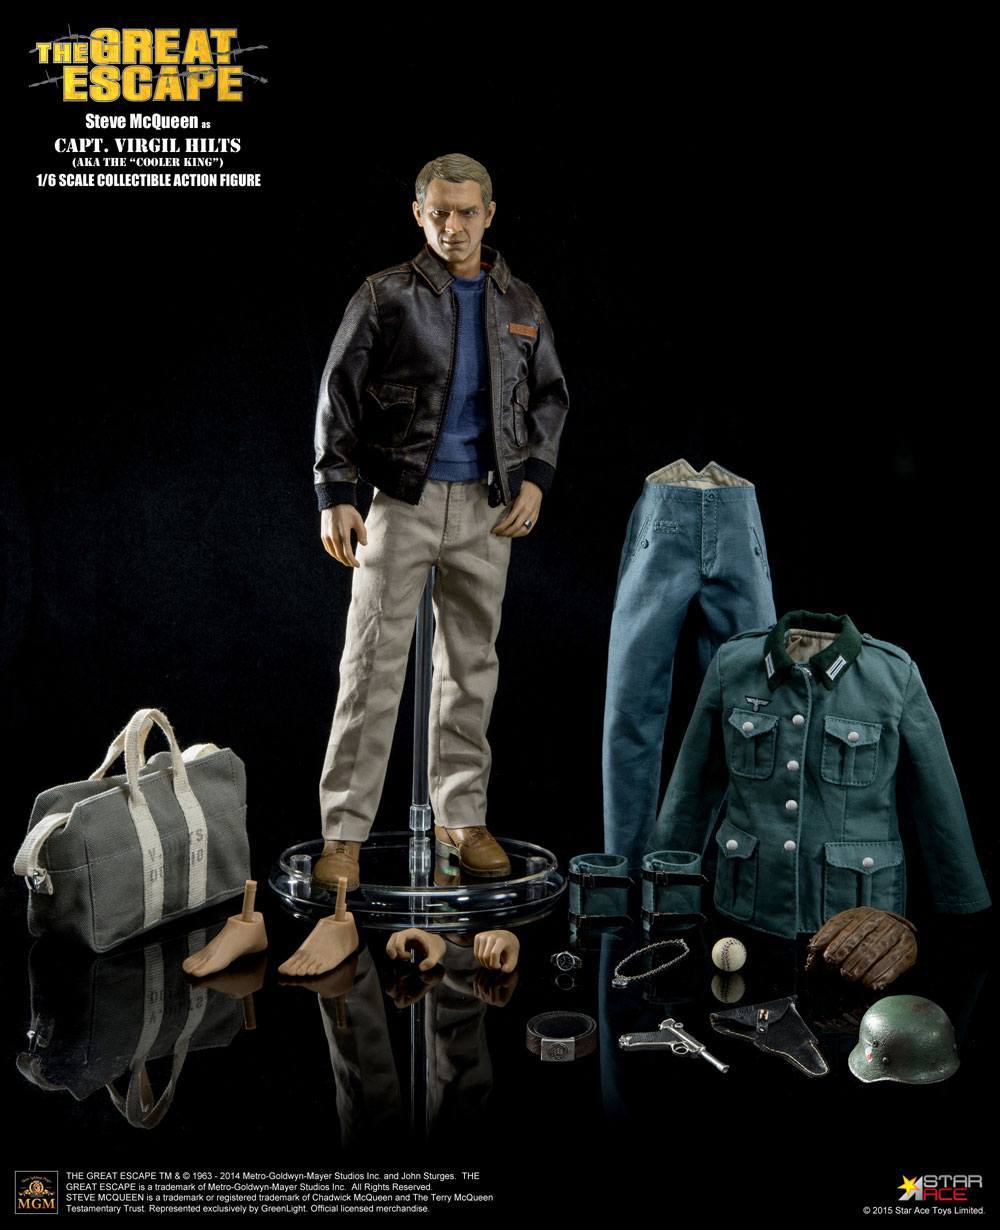 The Great Escape My Favourite Legend Action Figure 1/6 Steve McQueen Special Edition 30 cm